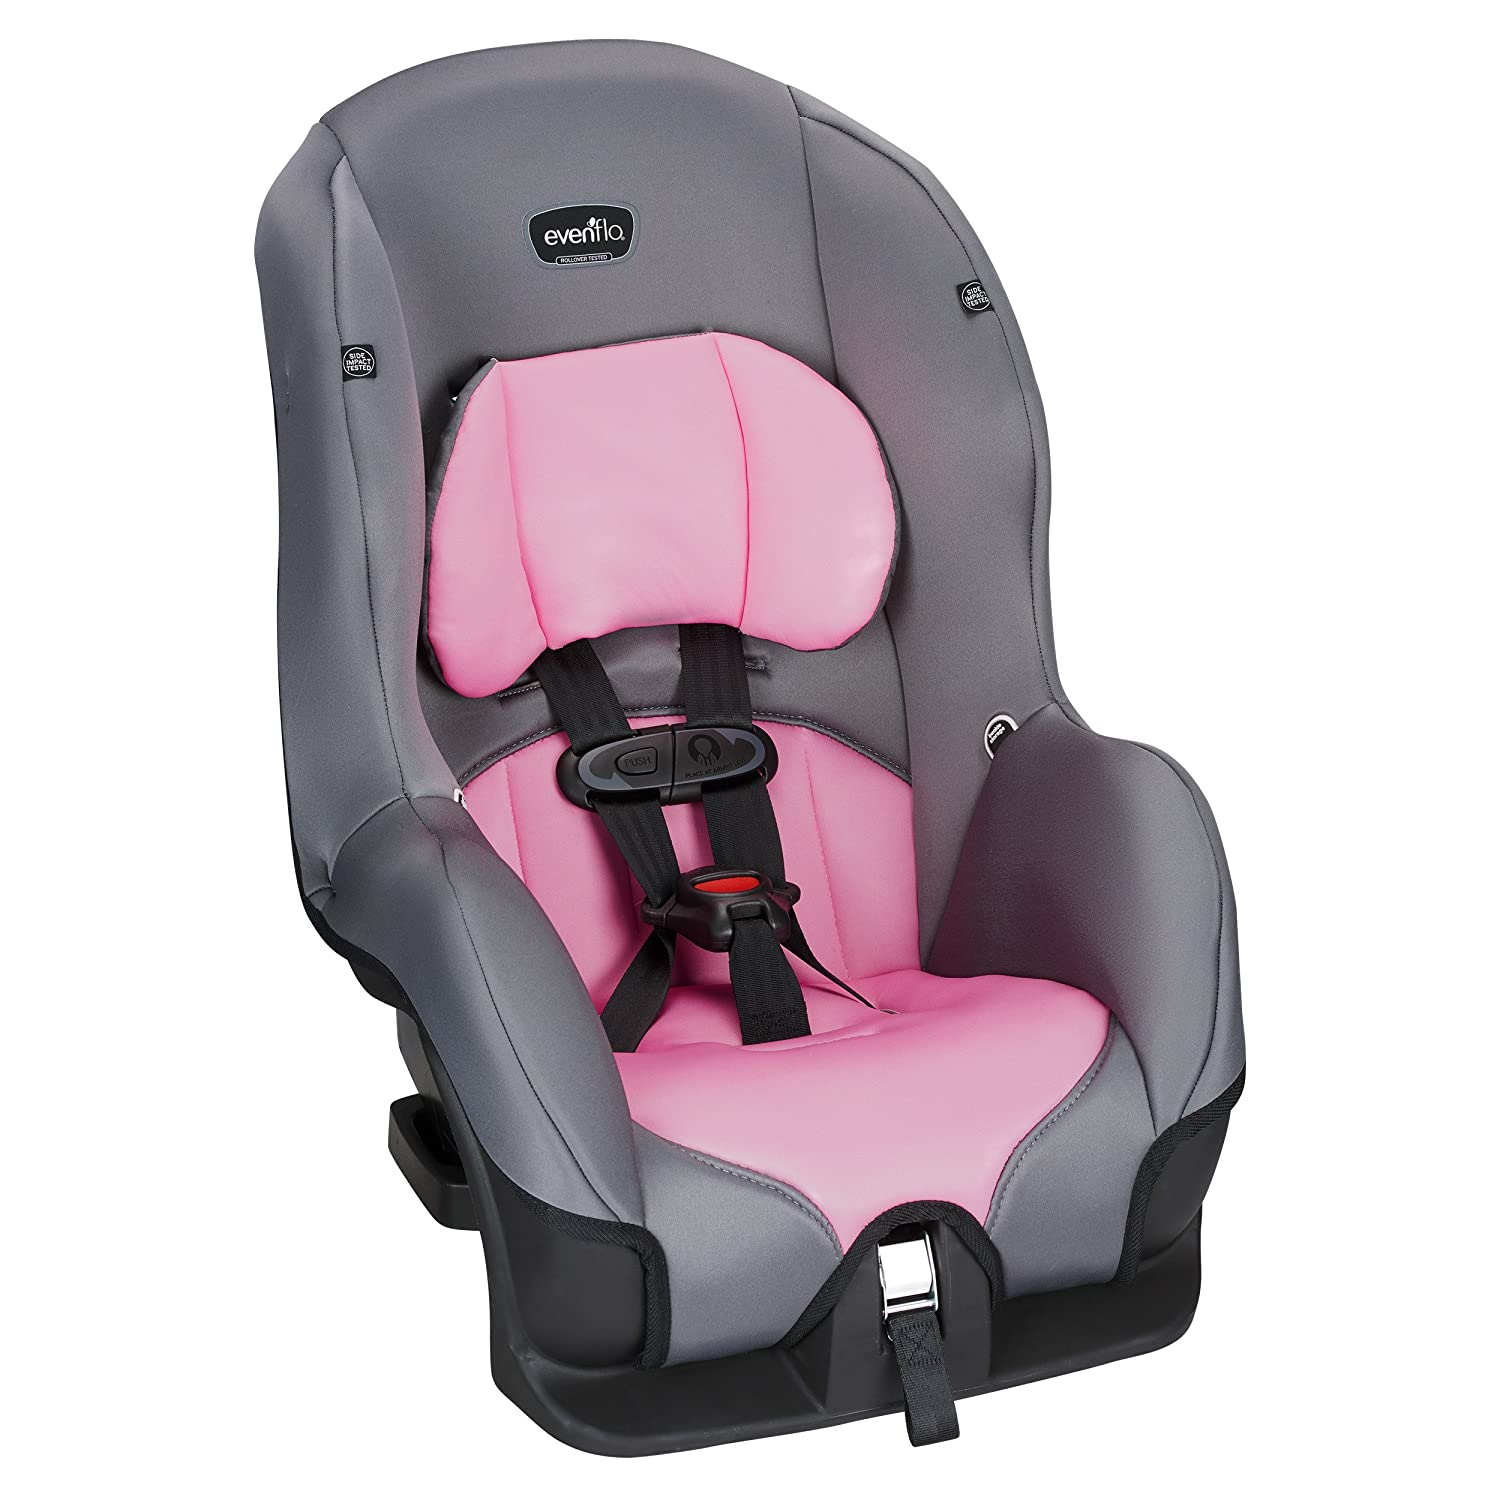 Evenflo Tribute LX Convertible Car Seat Pink Ice 38112121